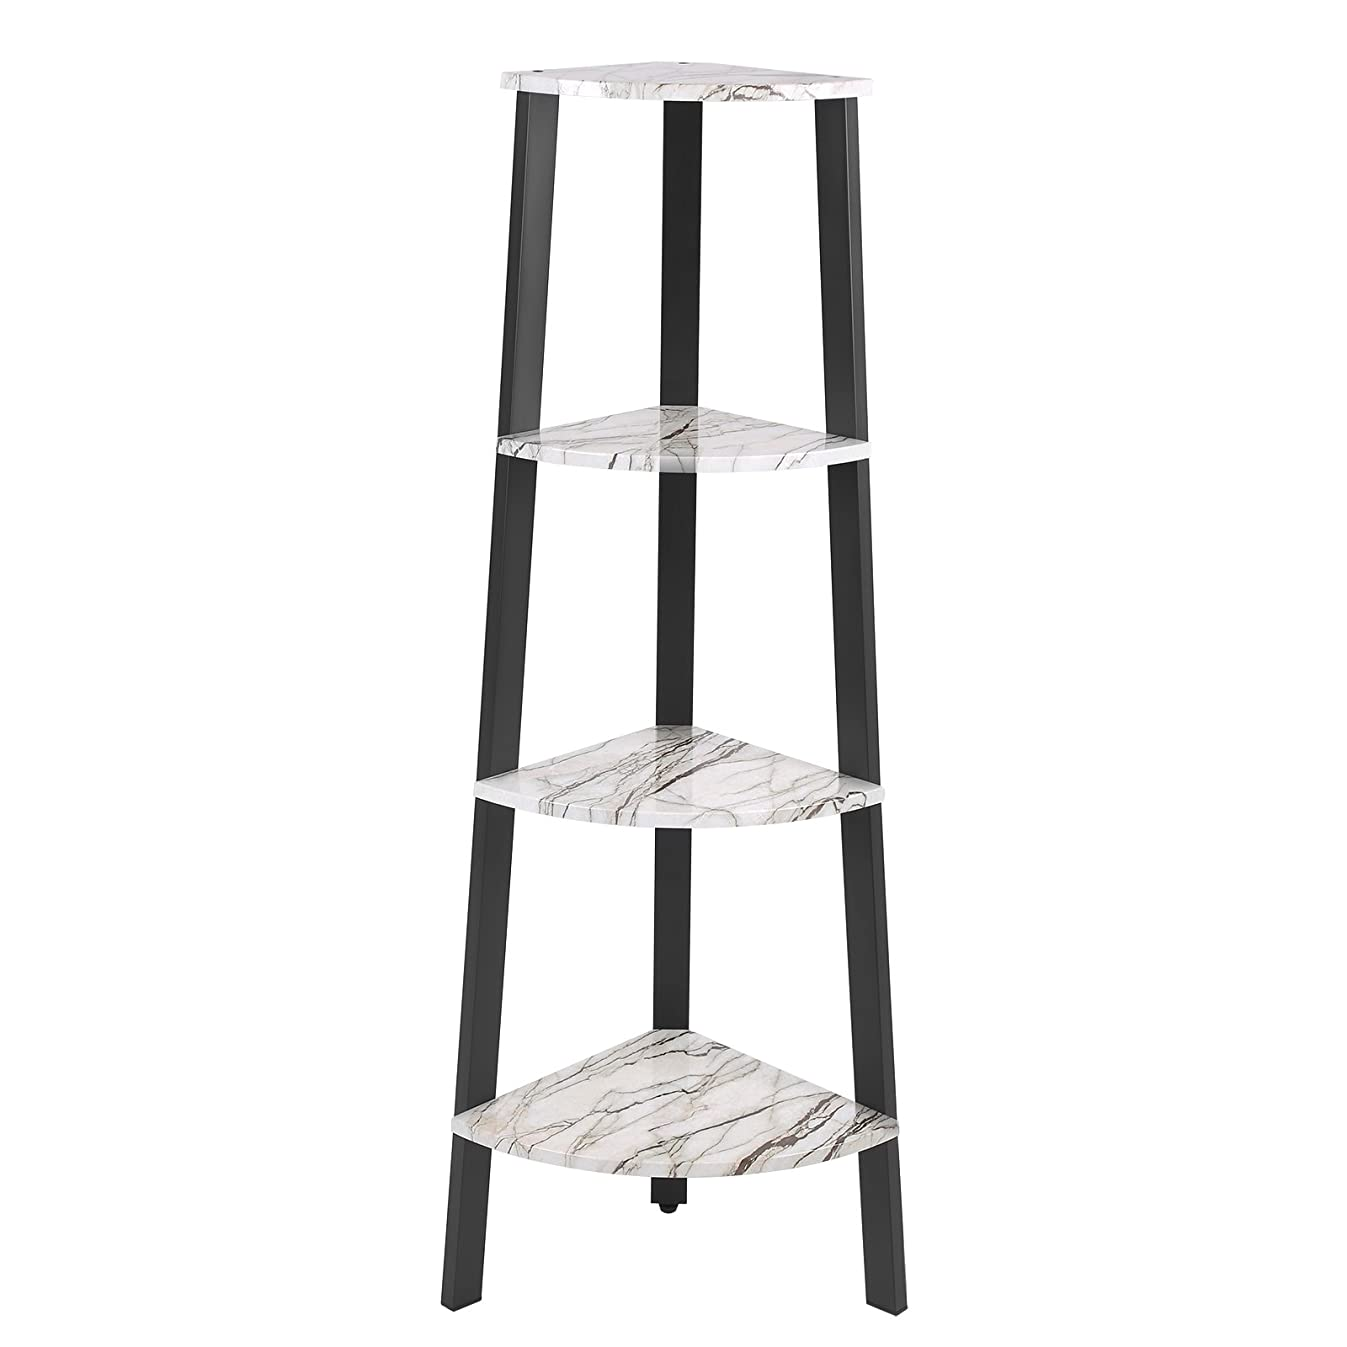 VASAGLE Corner Shelf, 4-Tier Display Shelf Bookshelf, Plant Stand for Home and Office, Faux Marble with Metal Frame ULLS34BW